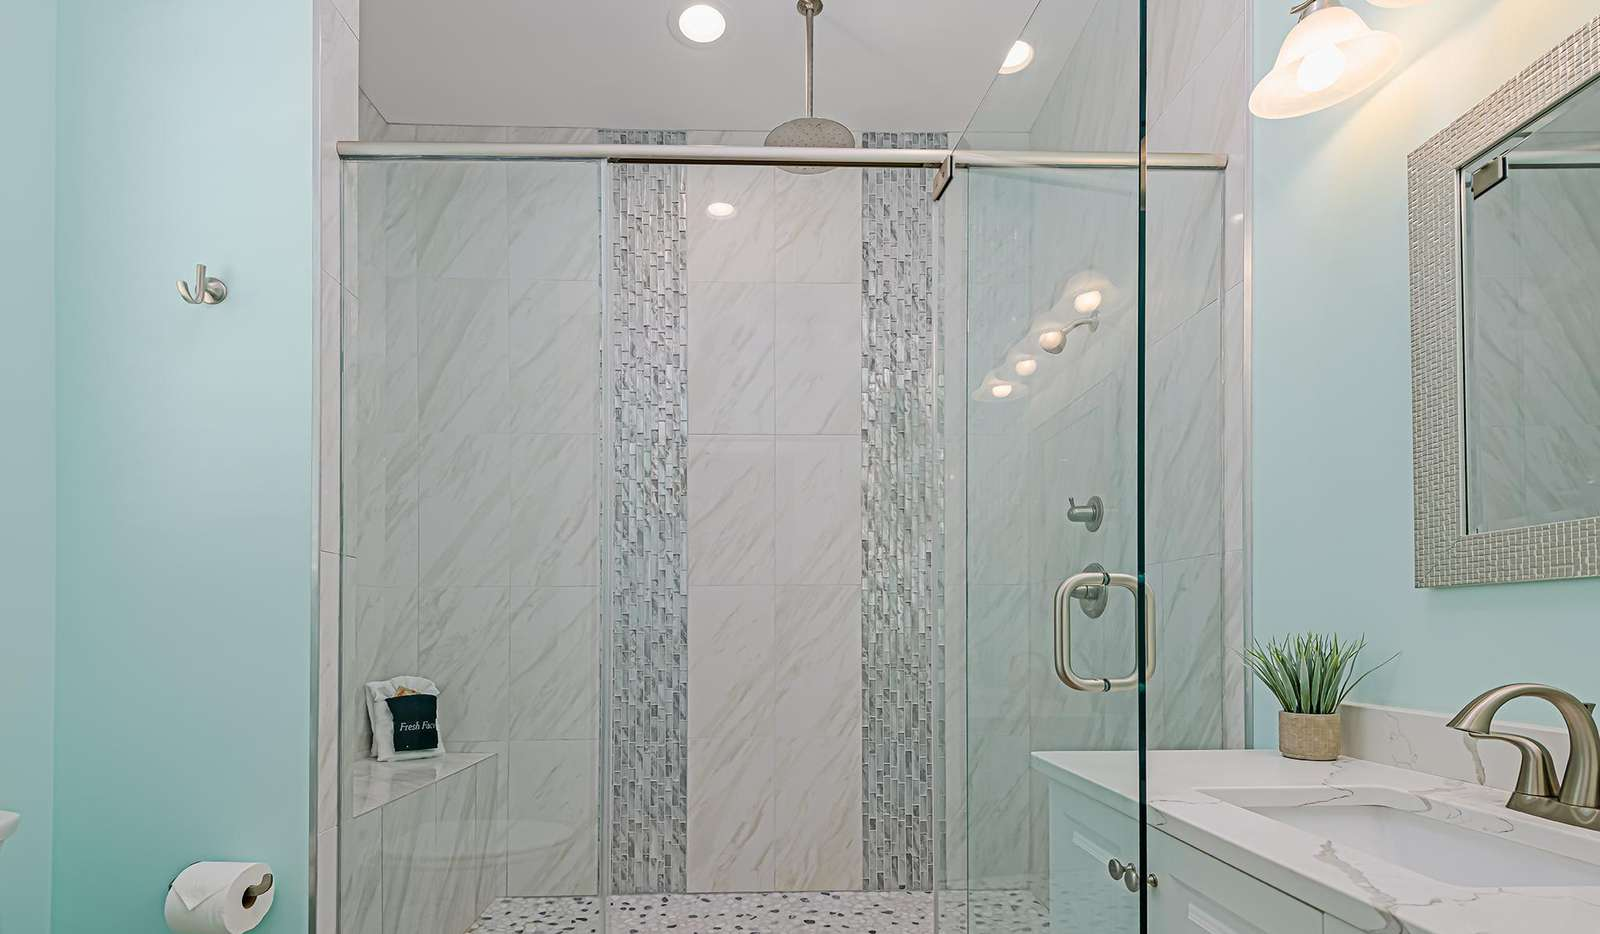 Huge walk-in shower with rainfall effect!